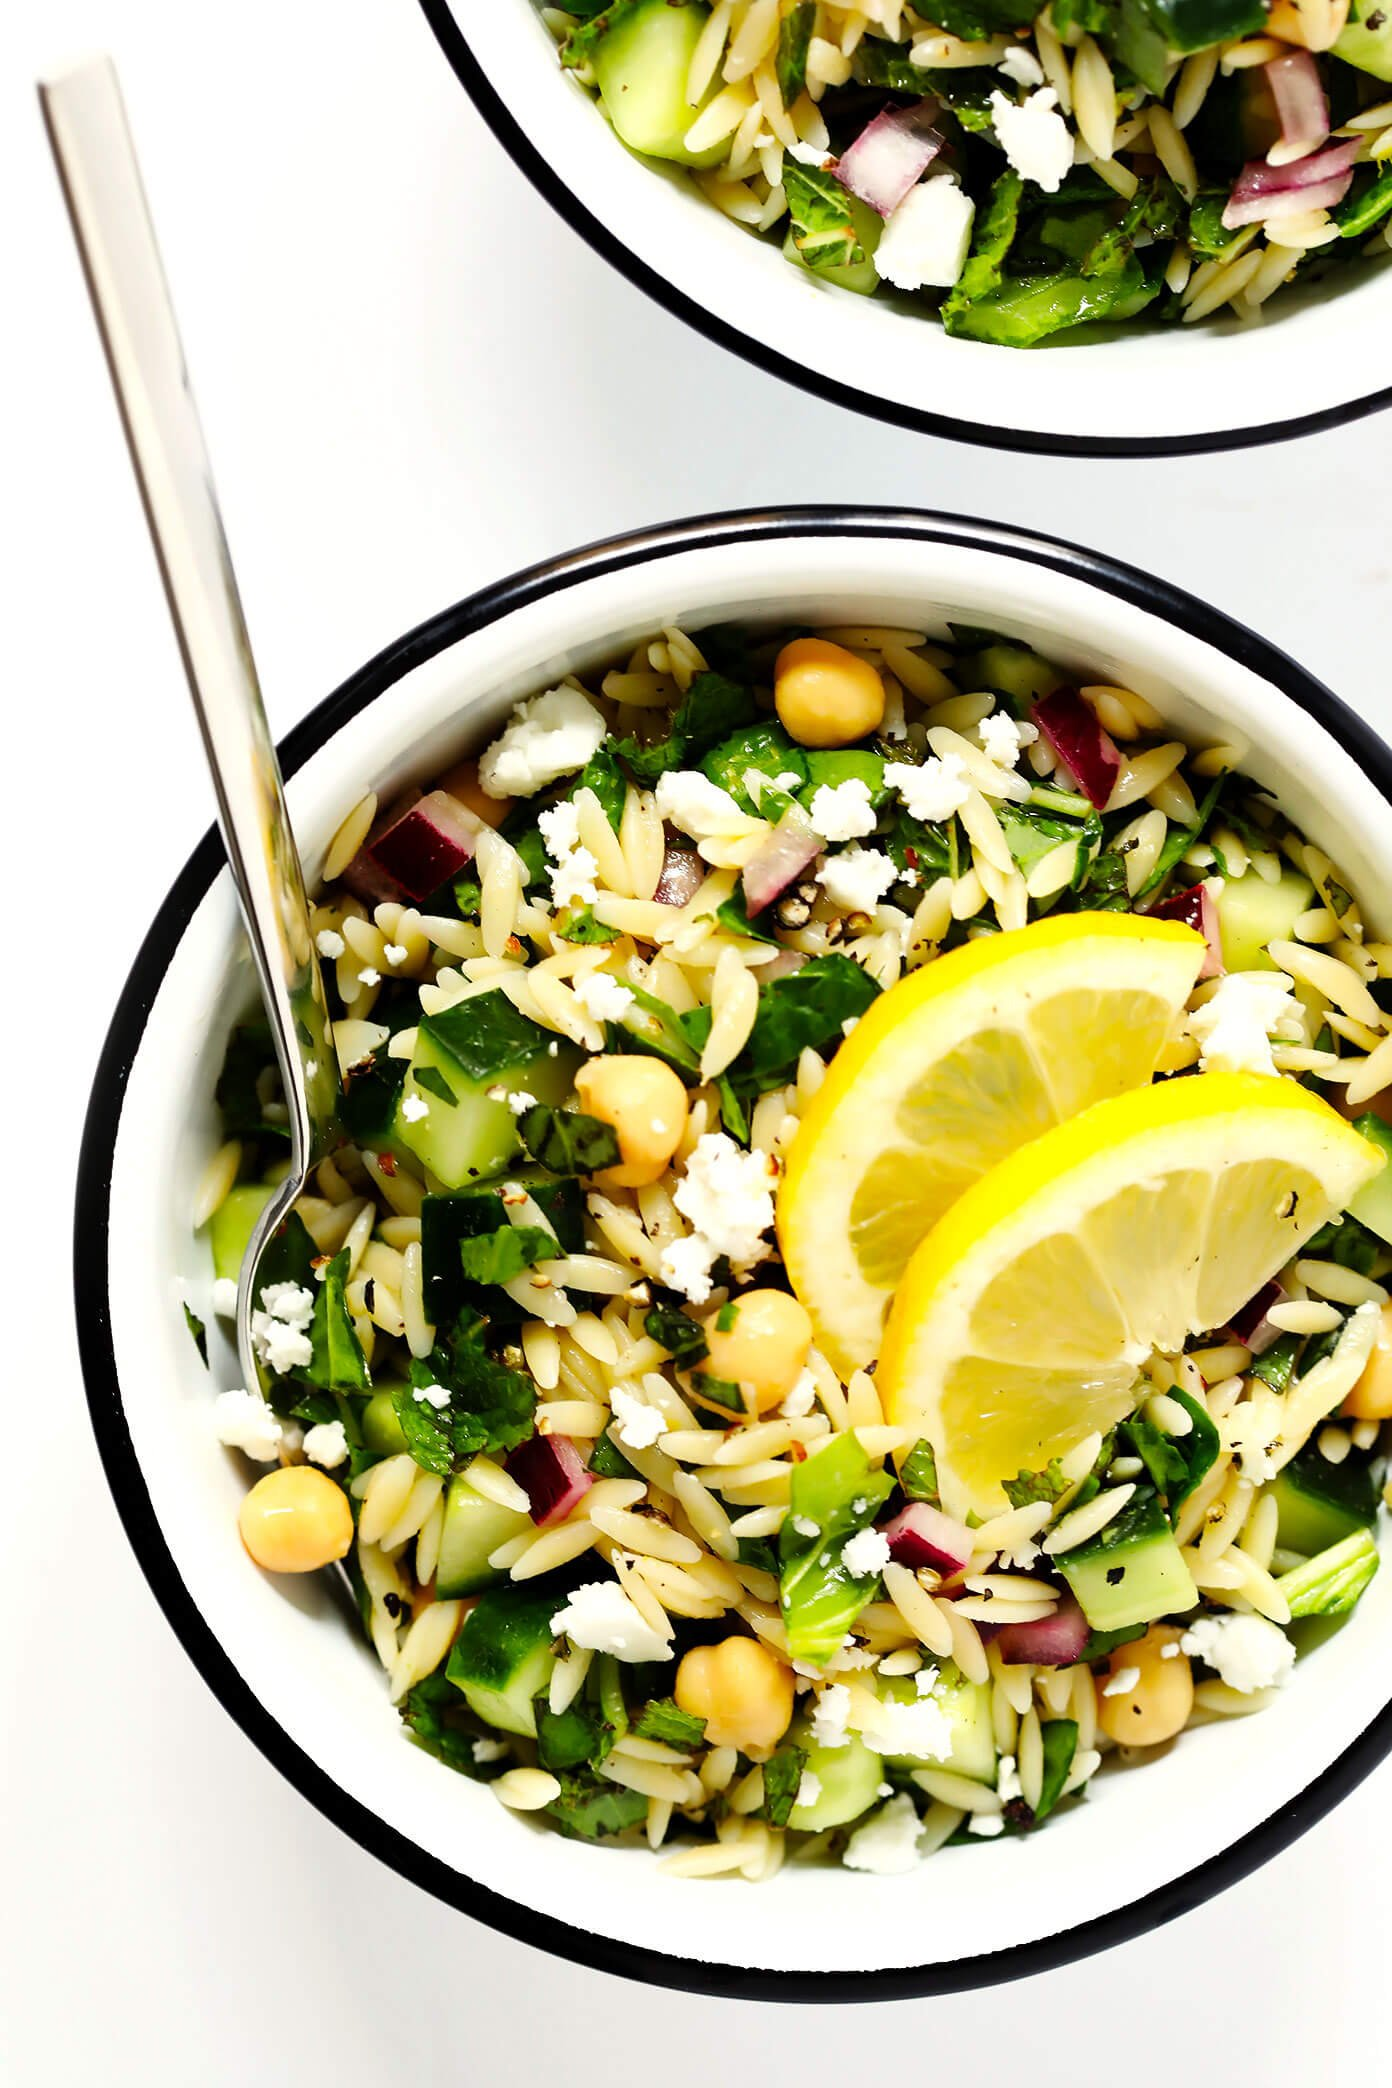 How To Make A Lemony Orzo Pasta Salad